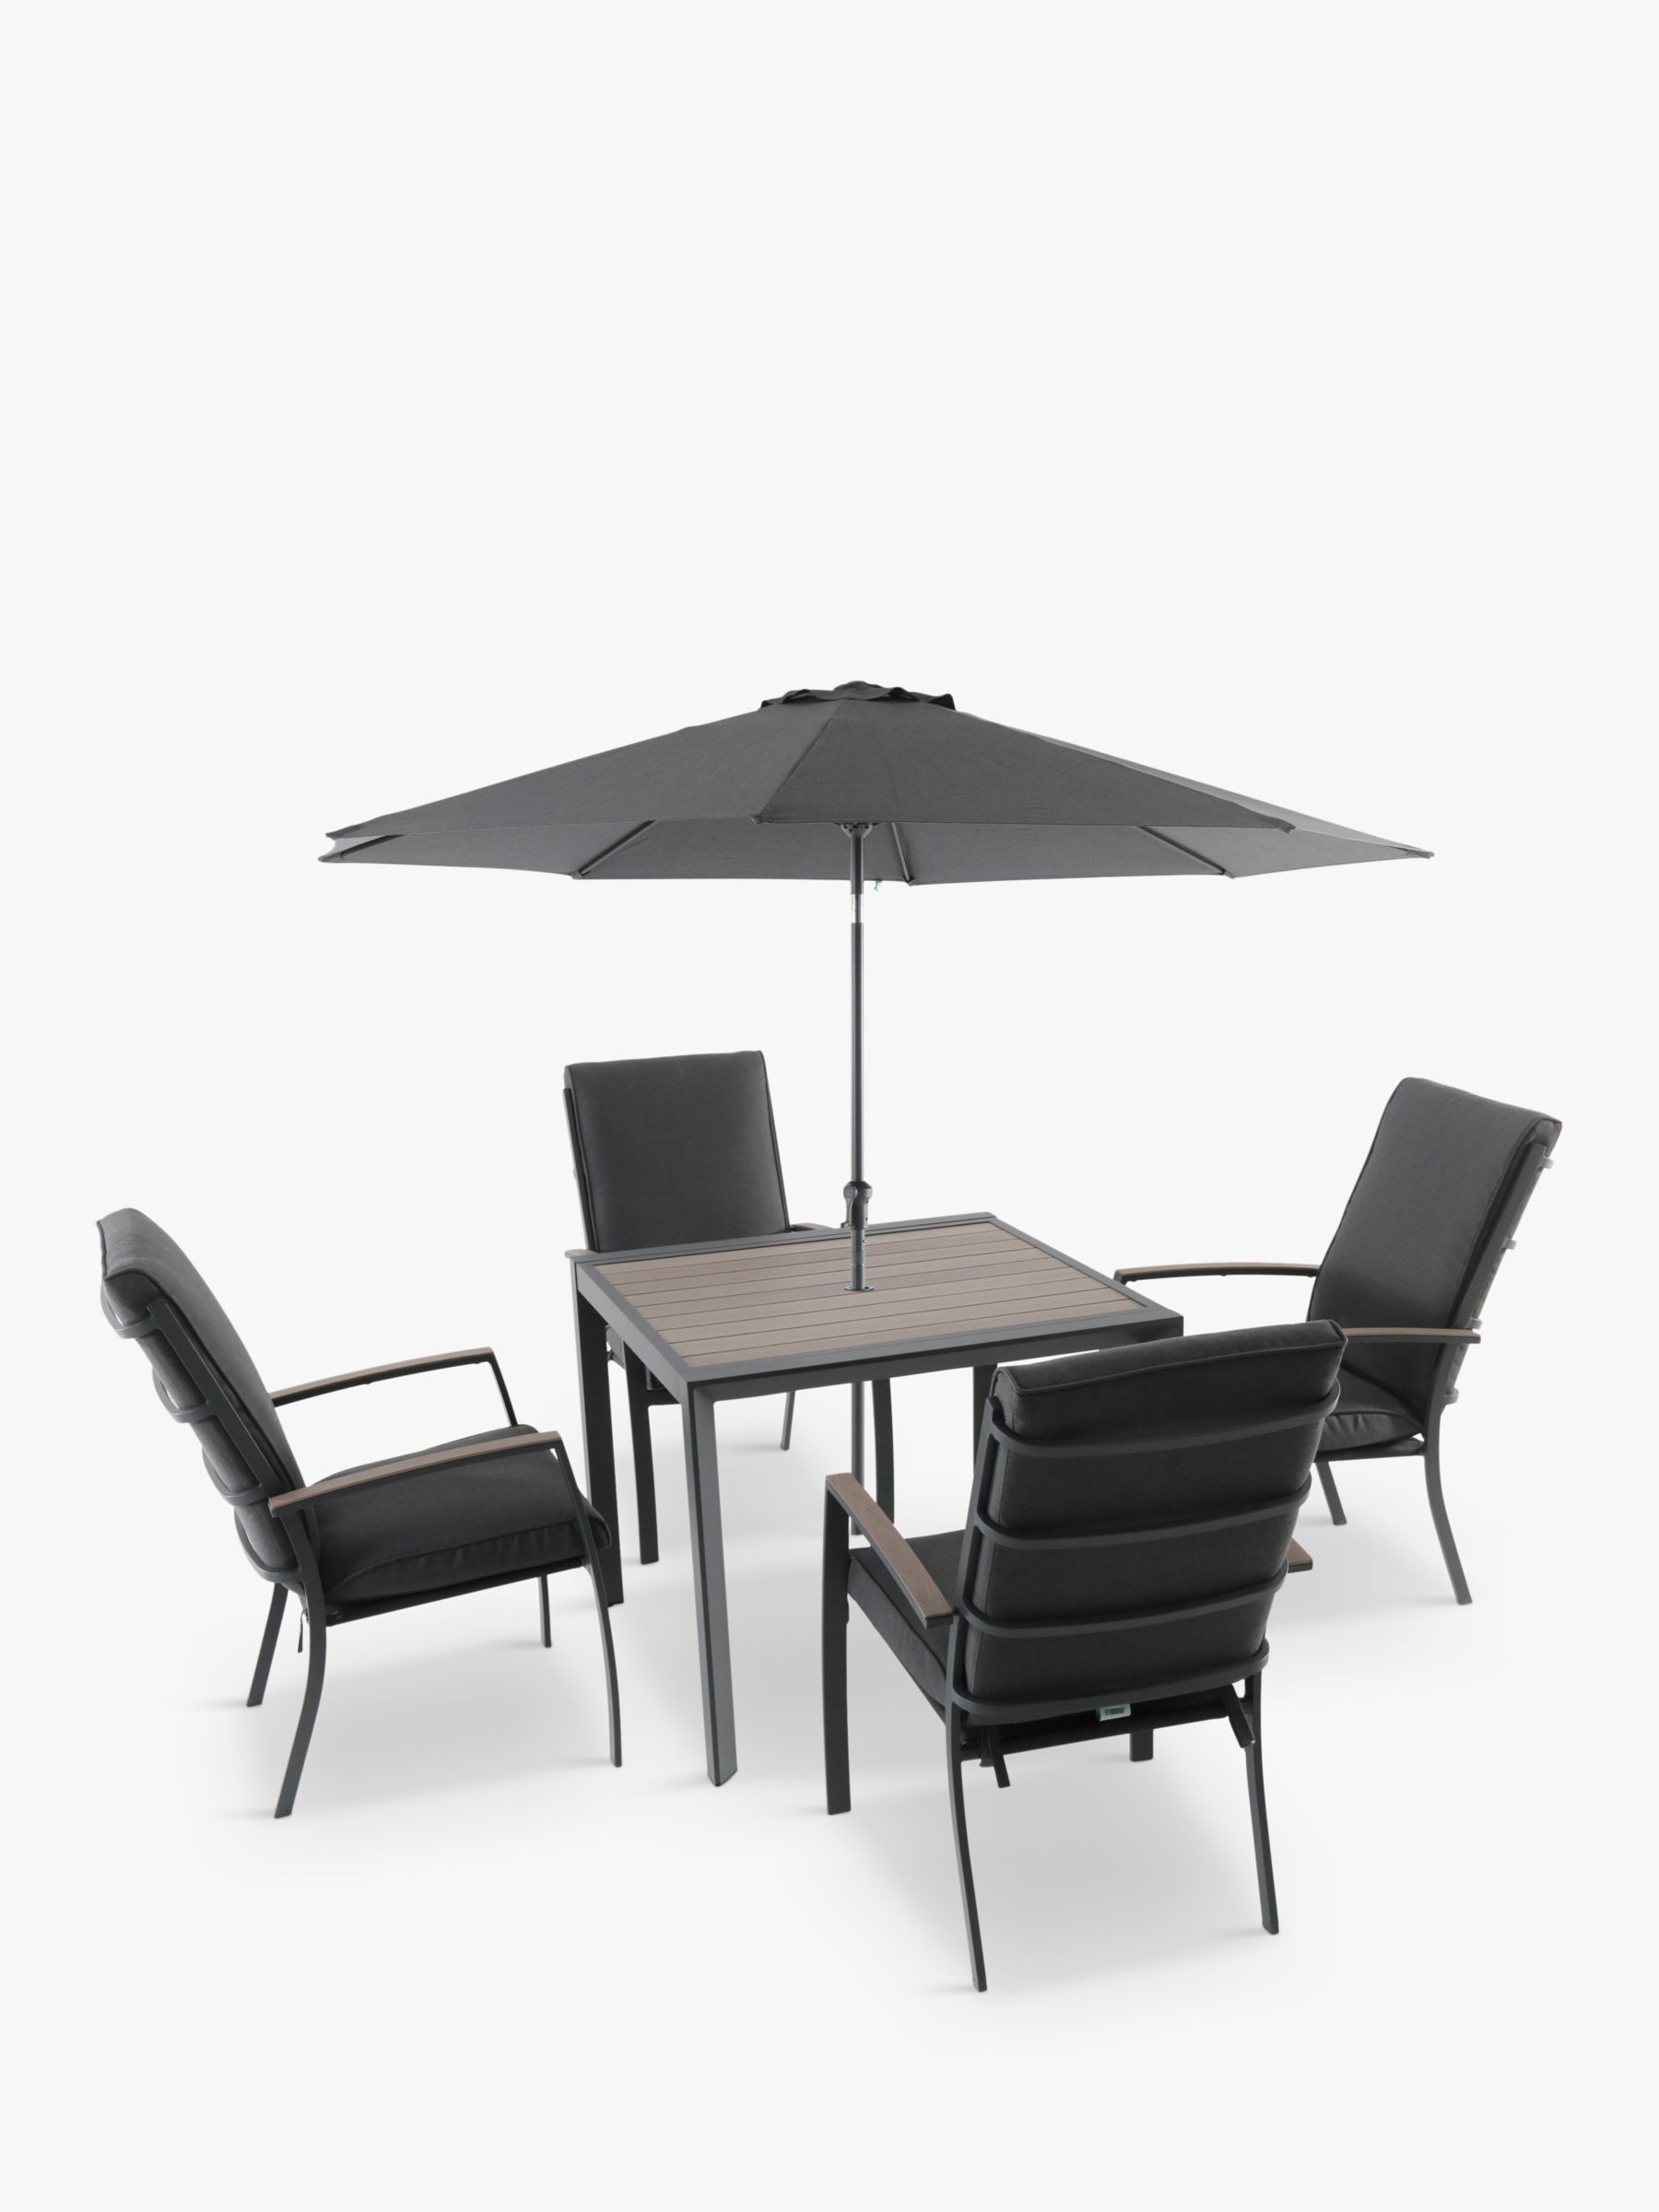 LG Outdoor LG Outdoor Milano 4-Seat Wood-Effect Garden Dining Table & Armchairs with Parasol, Grey